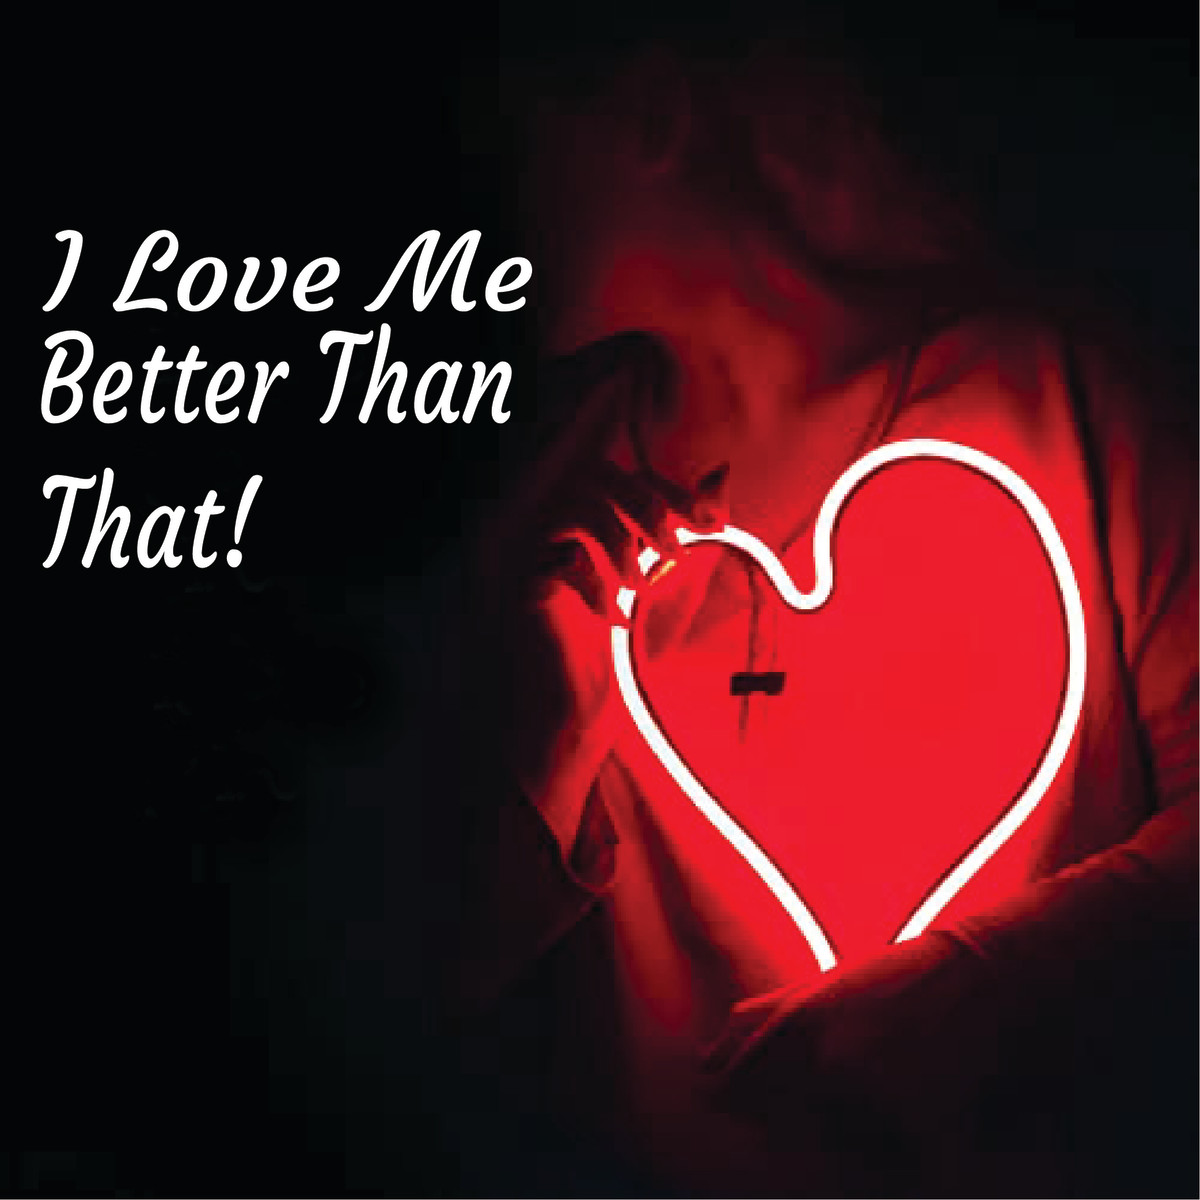 I Love Me Better Than That!